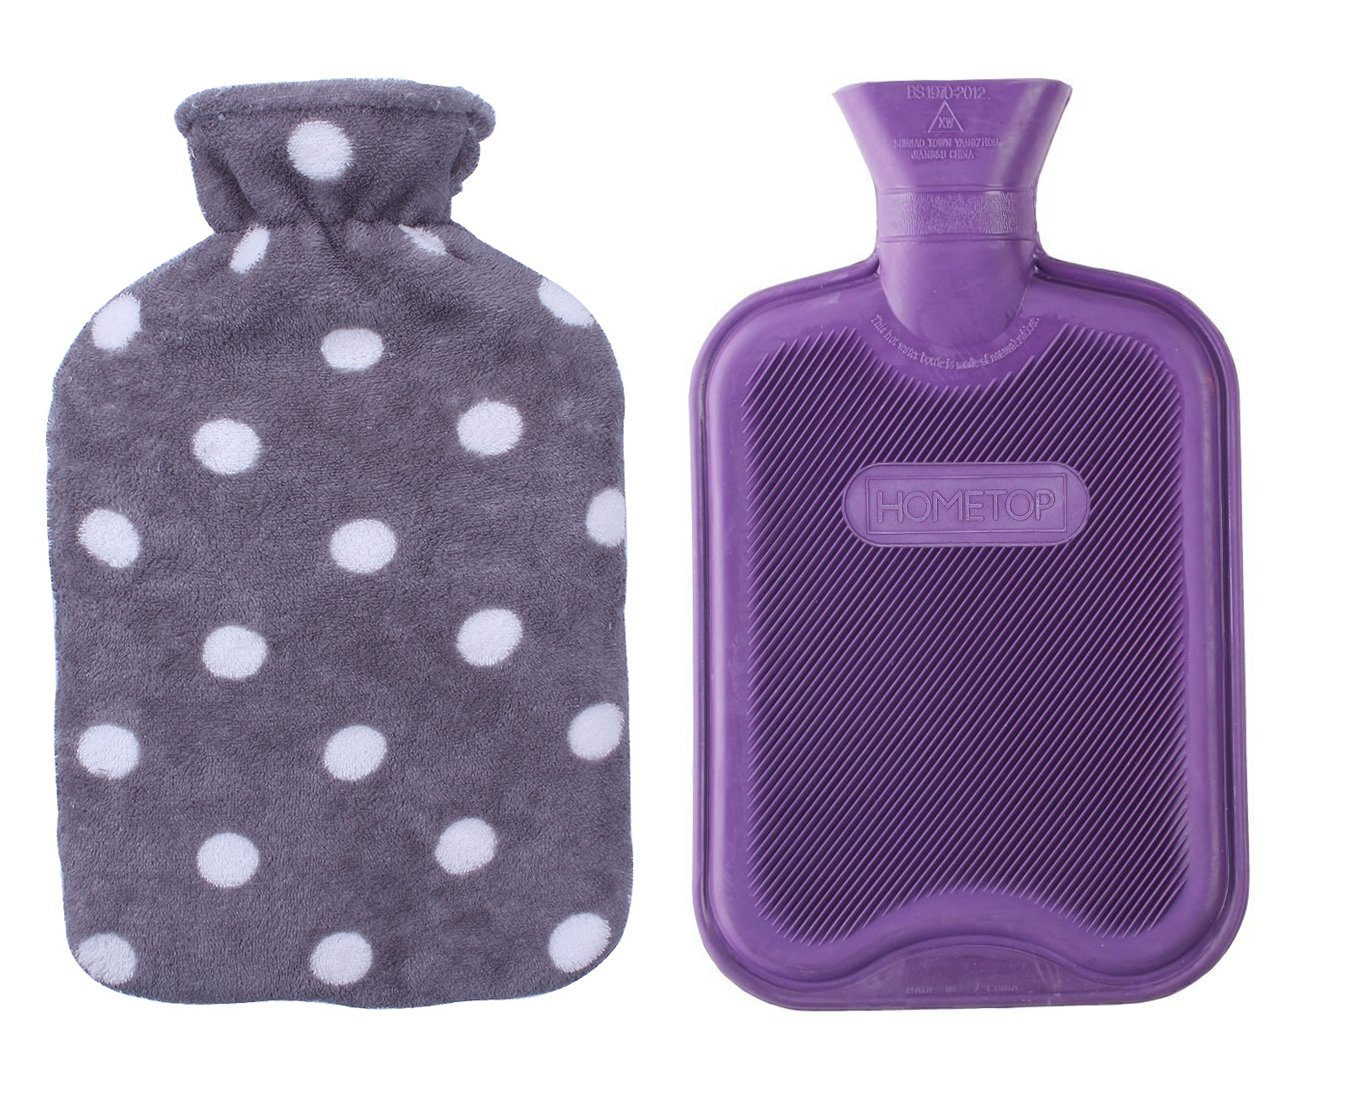 HomeTop Premium Classic Rubber Hot or Cold Water Bottle with Soft Fleece Cover (2 Liters, Purple/Gray Polka Dot) by HomeTop